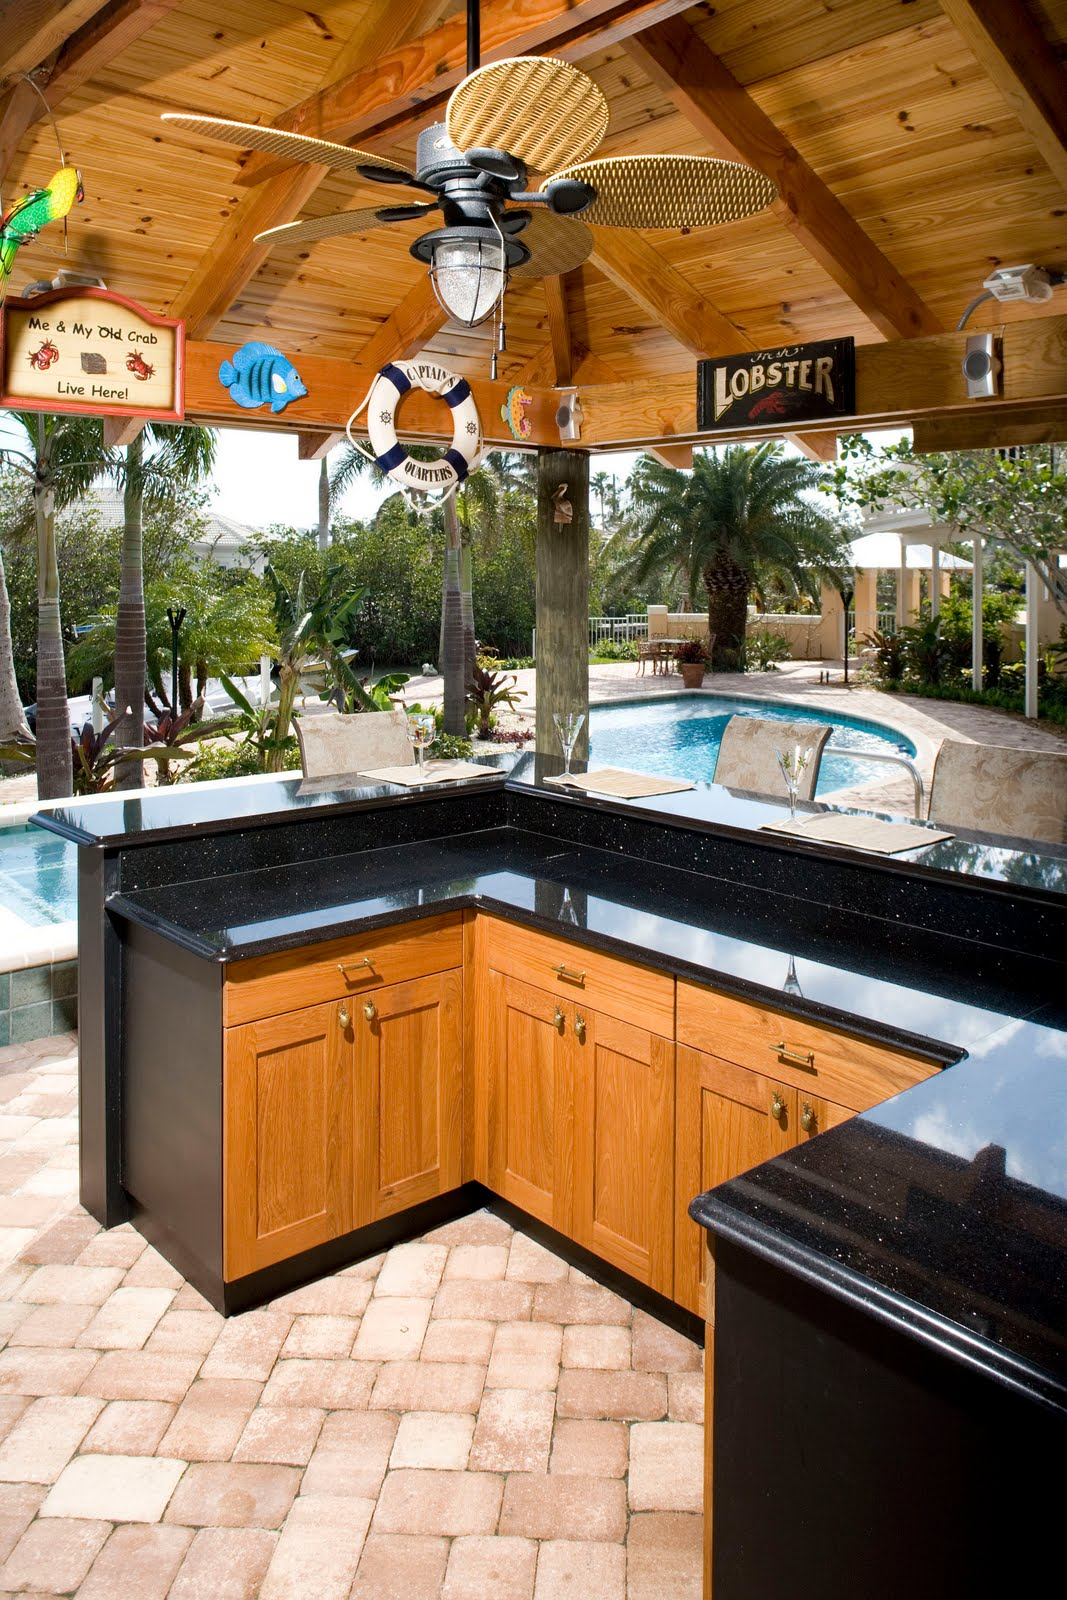 Bobby Outdoor Kitchen